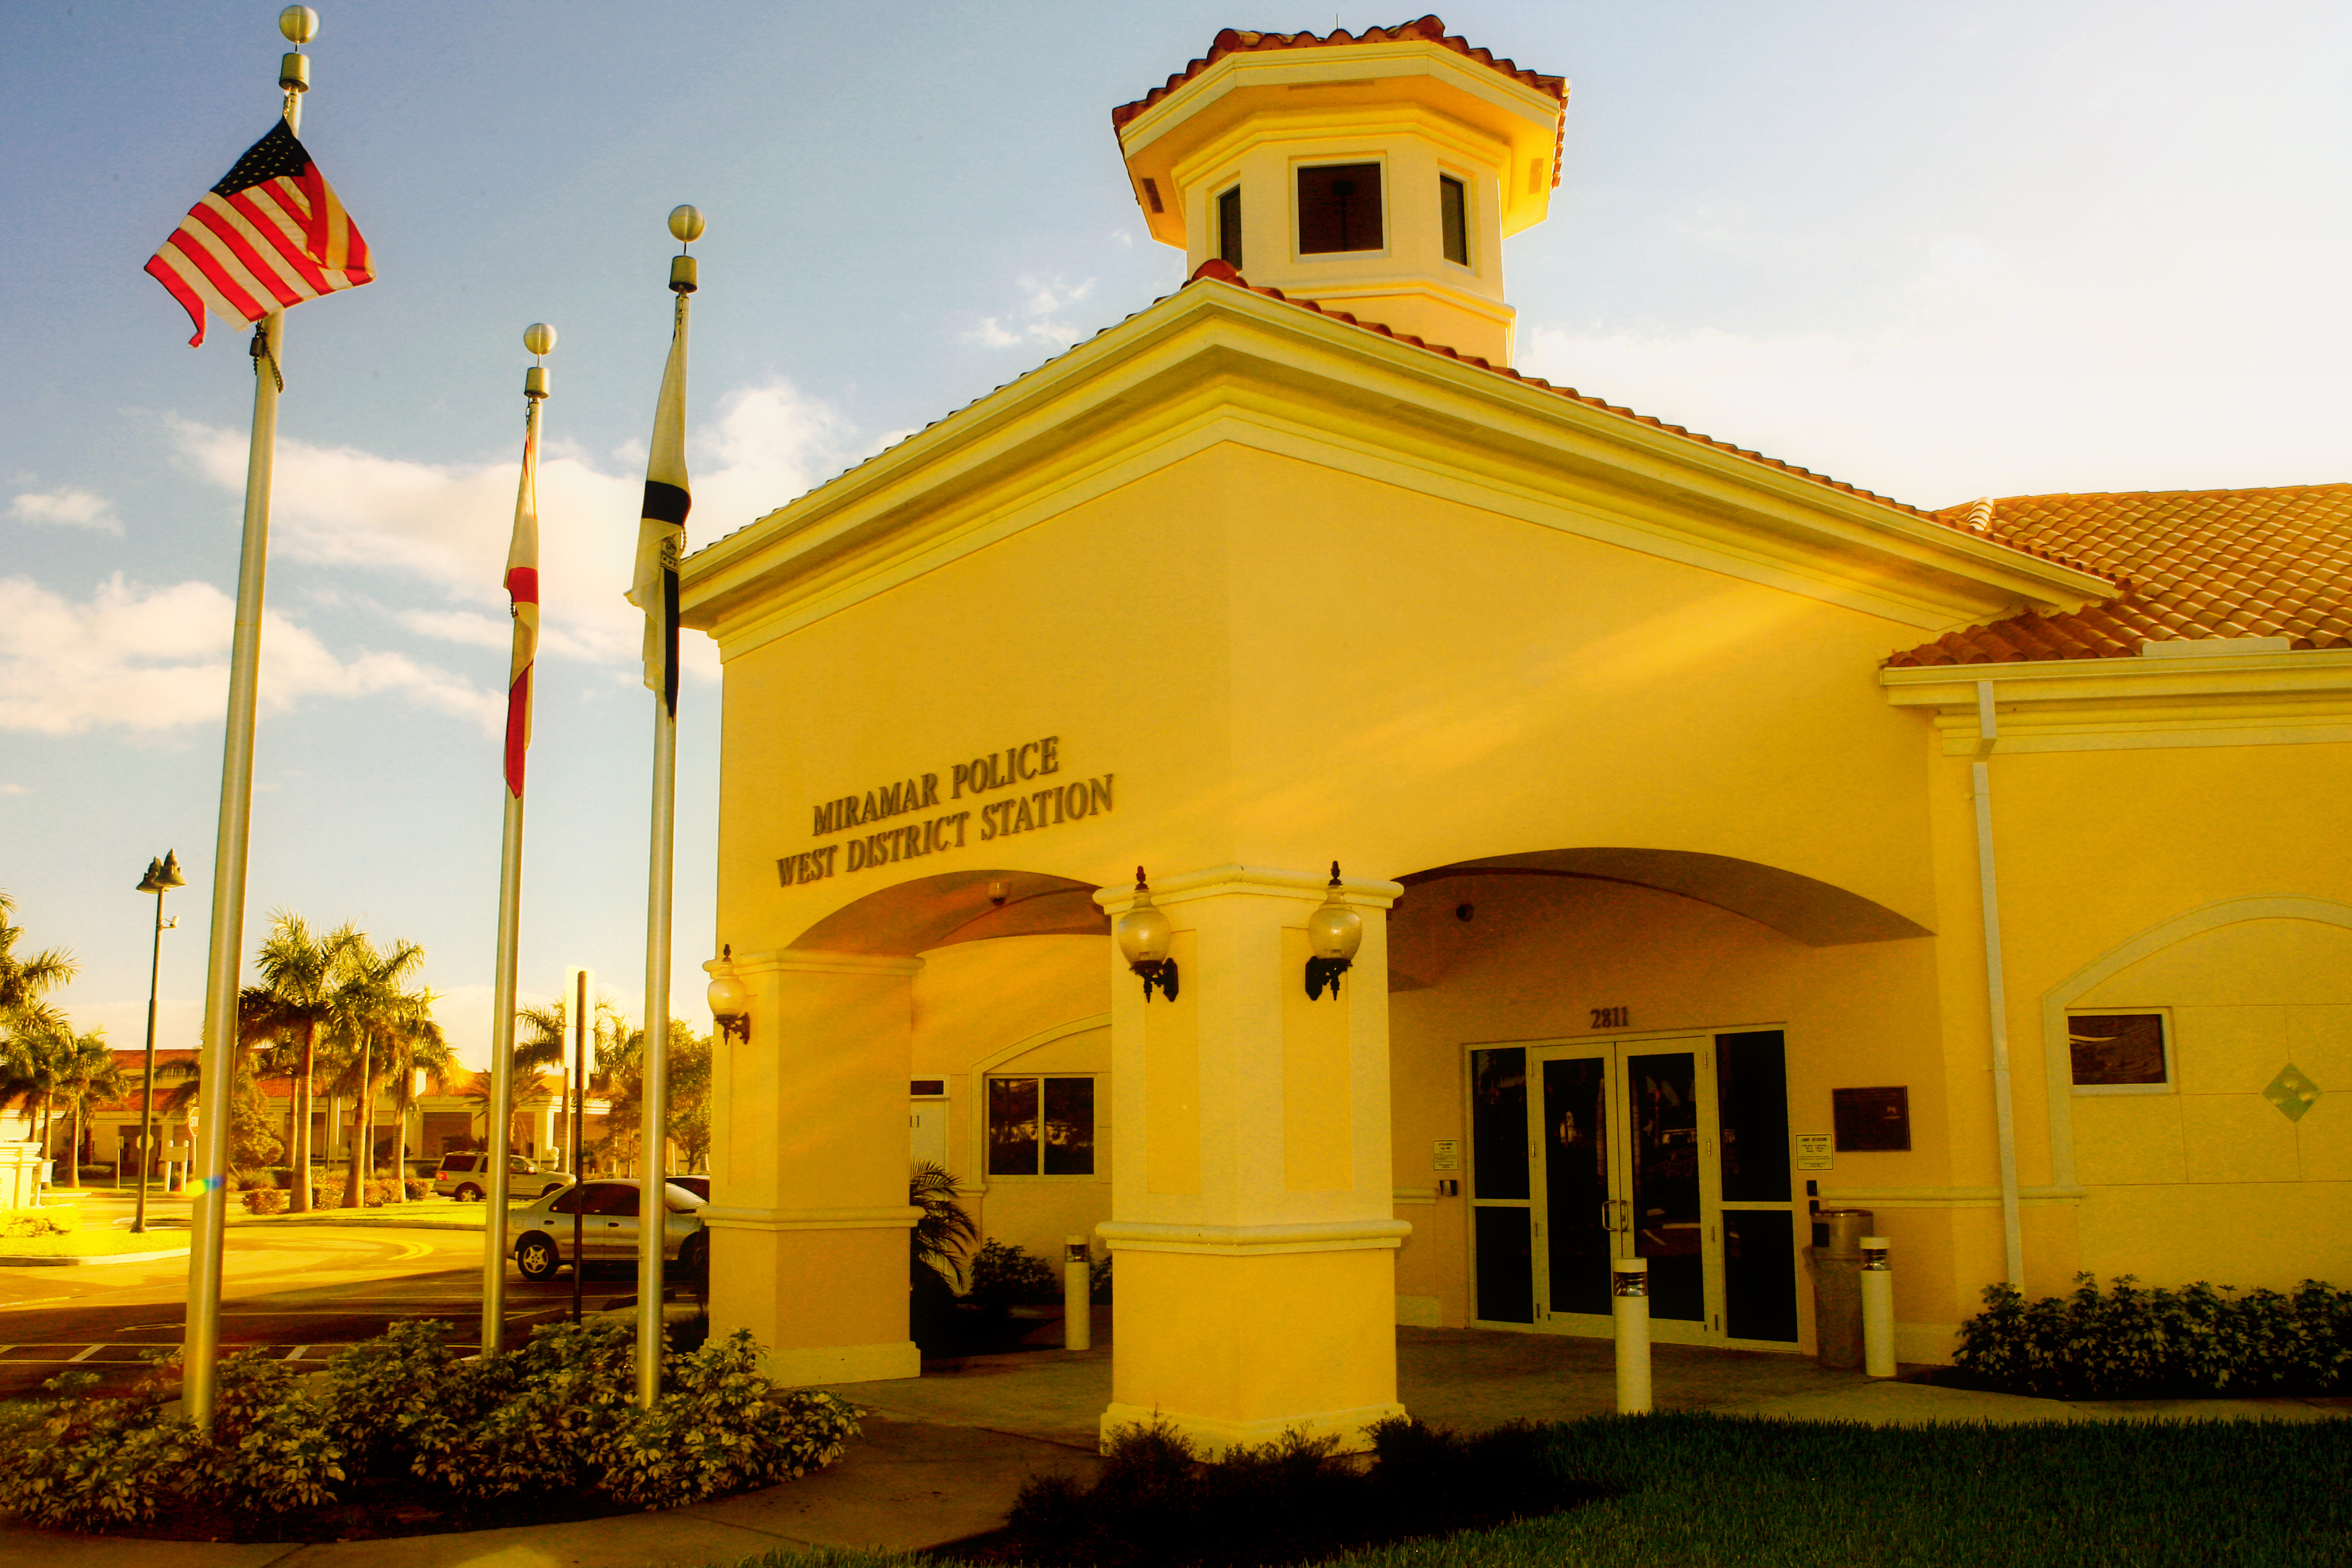 The Miramar Police West District Station building